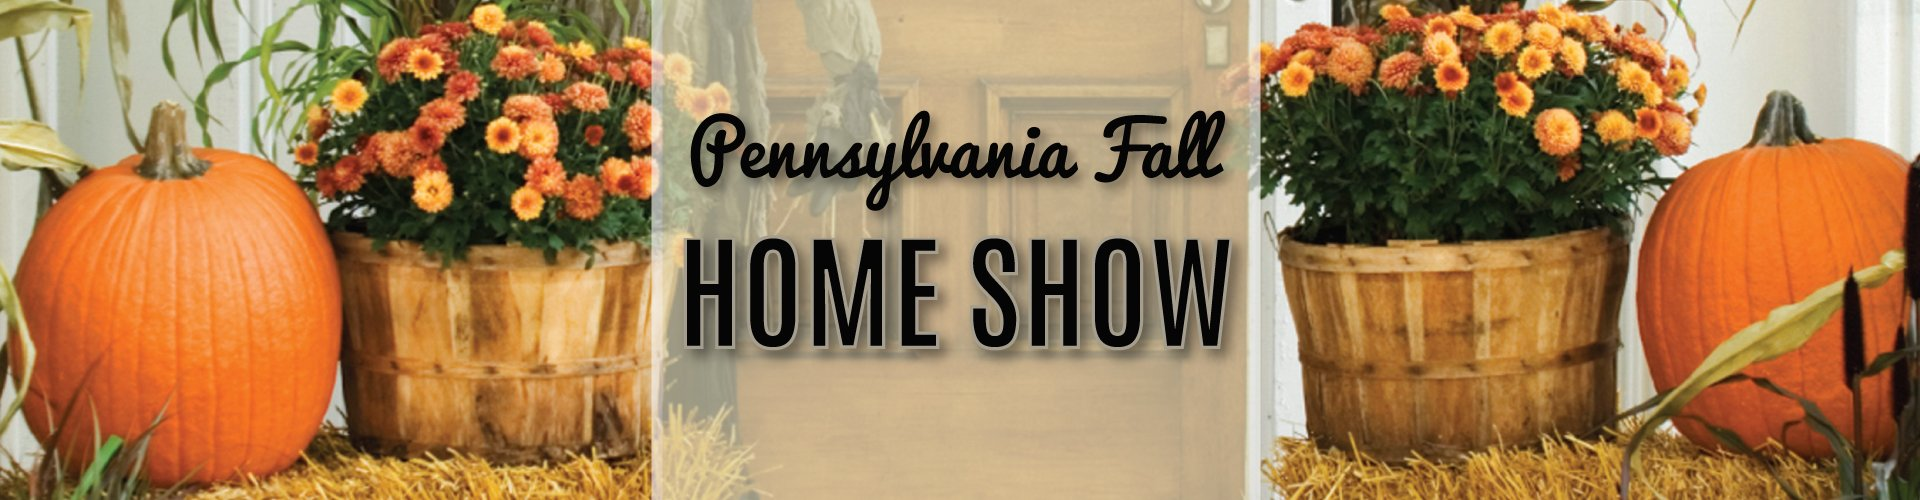 2017 FALL EASTERN PA HOME SHOW